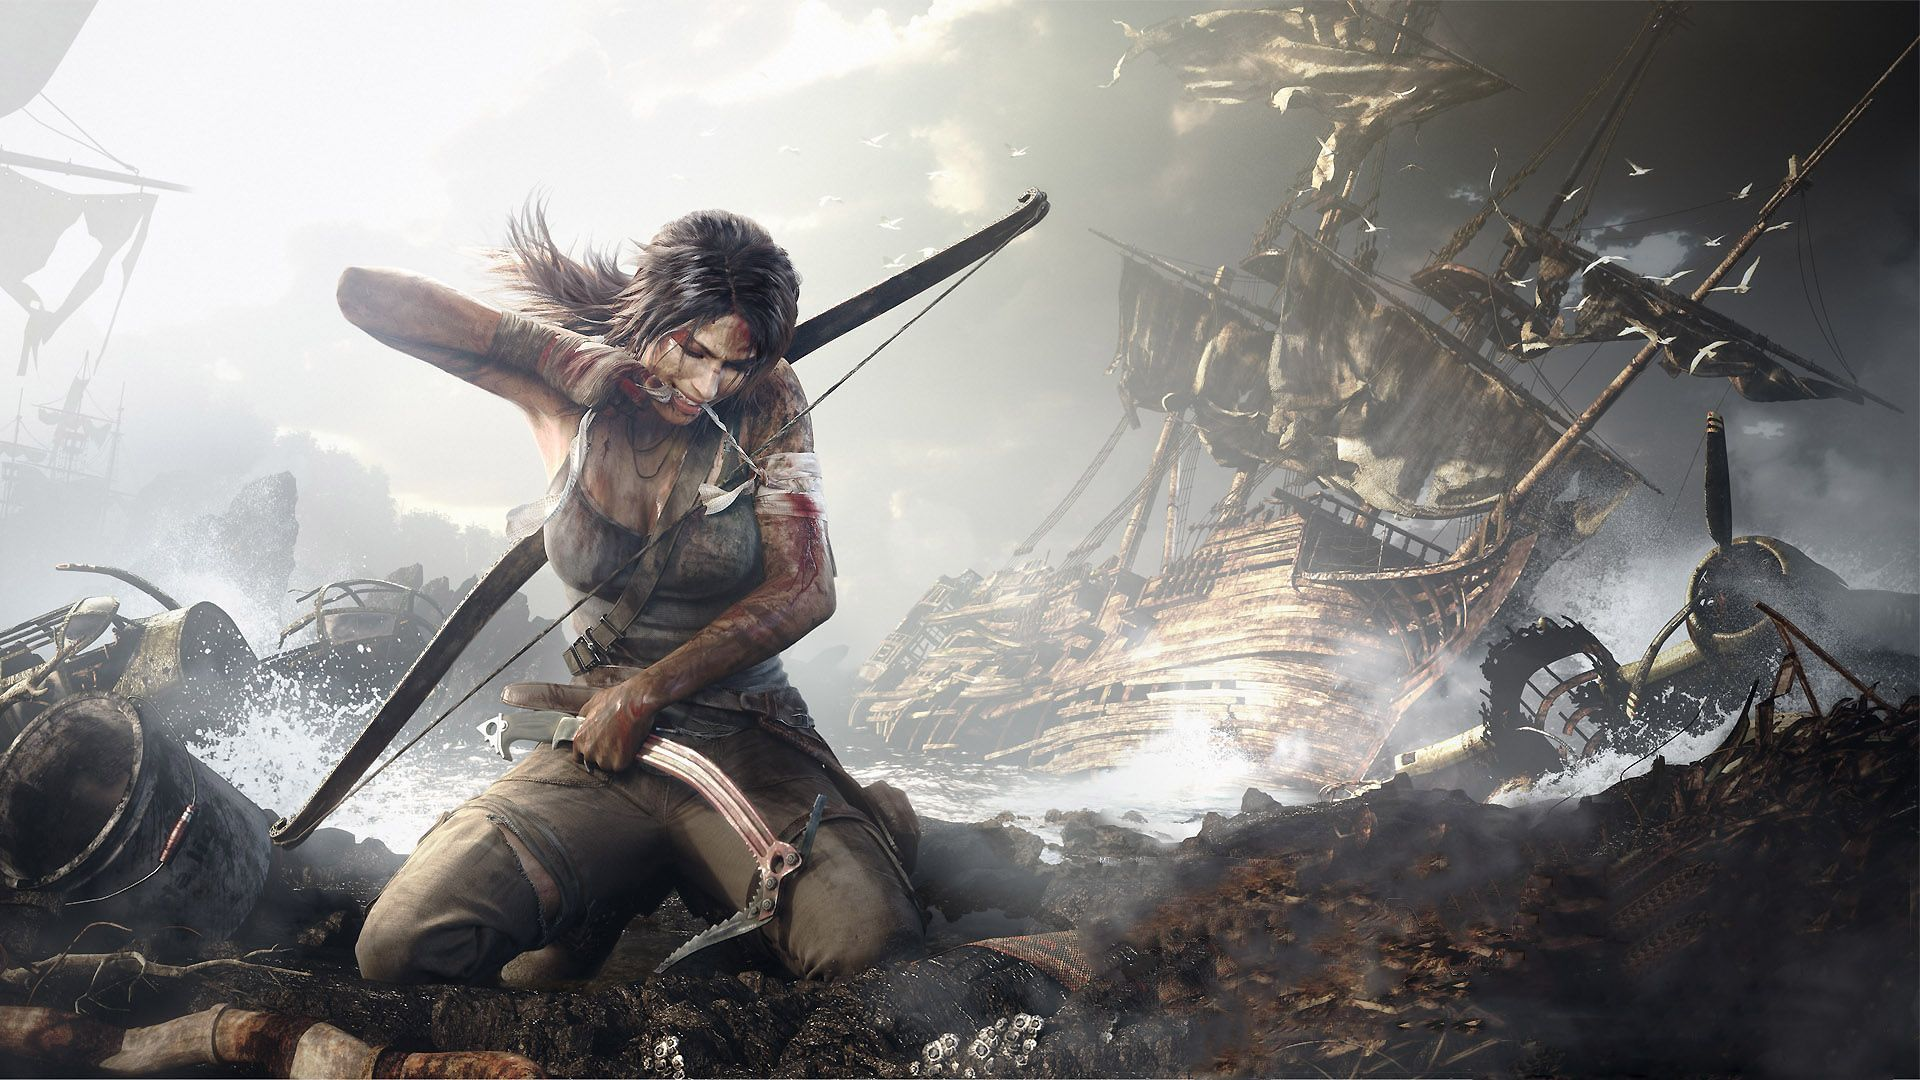 Rise Of The Tomb Raider Hd Desktop Wallpaper Widescreen